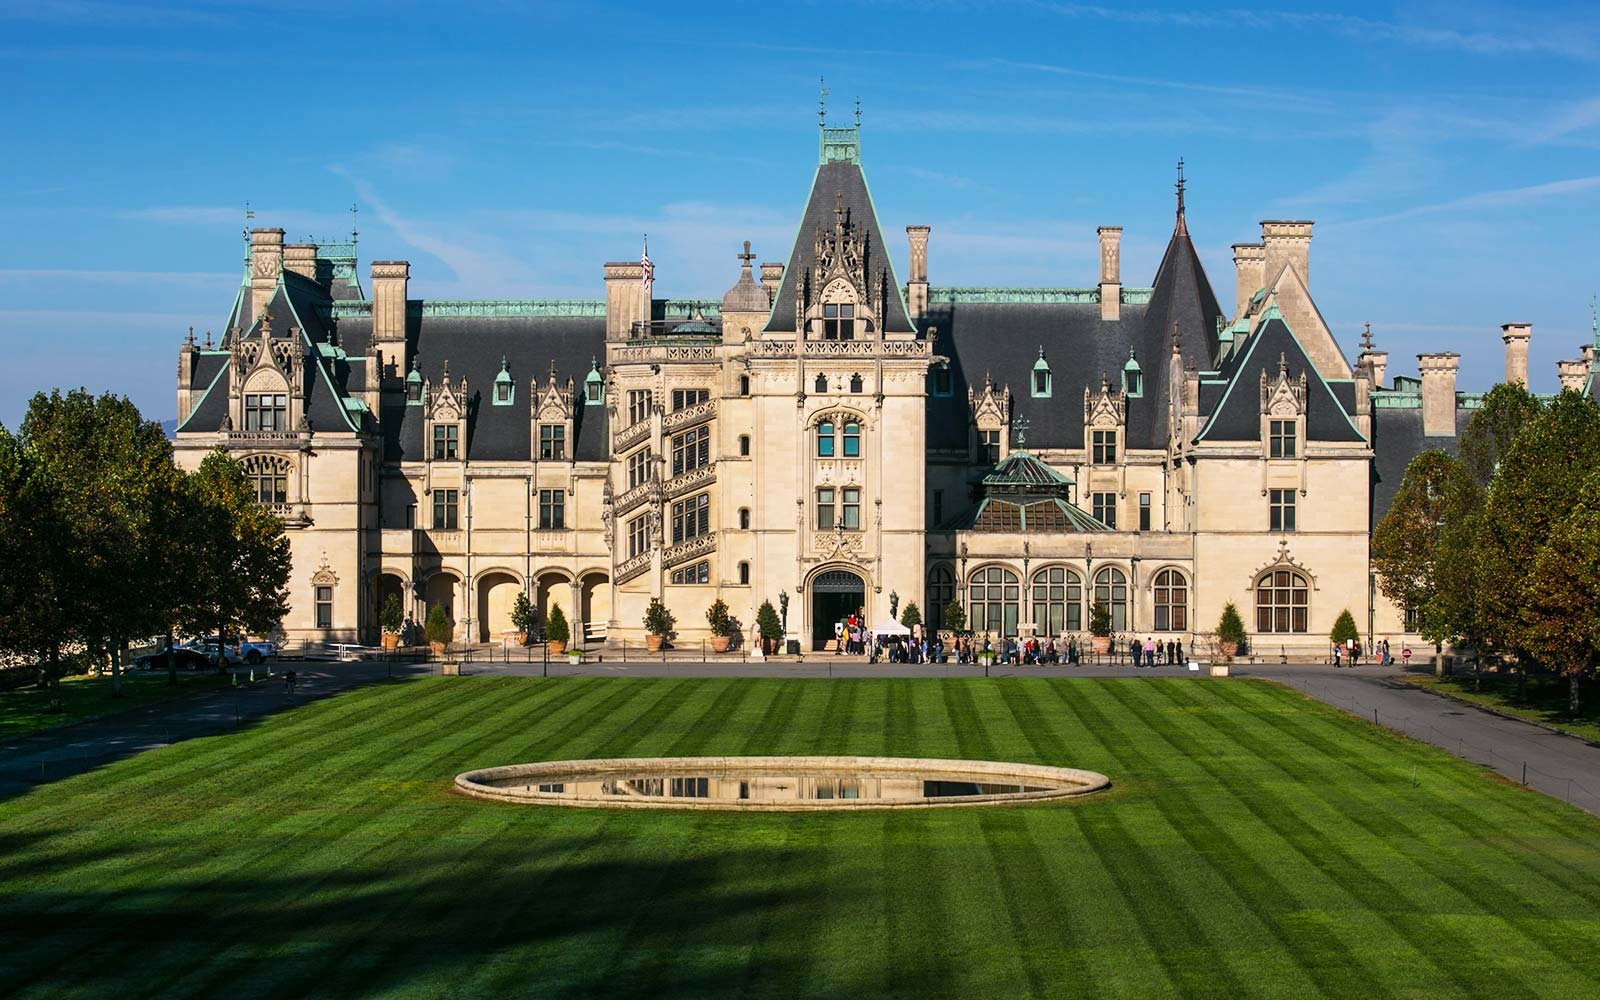 Today and tomorrow only, you can get a 50% off discount on Biltmore Estate tickets (Asheville, NC) for any visit before June 30th! If you choose Monday-Thursday tickets they'll be $ each (reg. $59). Or pick a Friday-Sunday ticket for $ (reg. $69). I've never seen a discount on Biltmore tickets and this might make for a really fun family day!